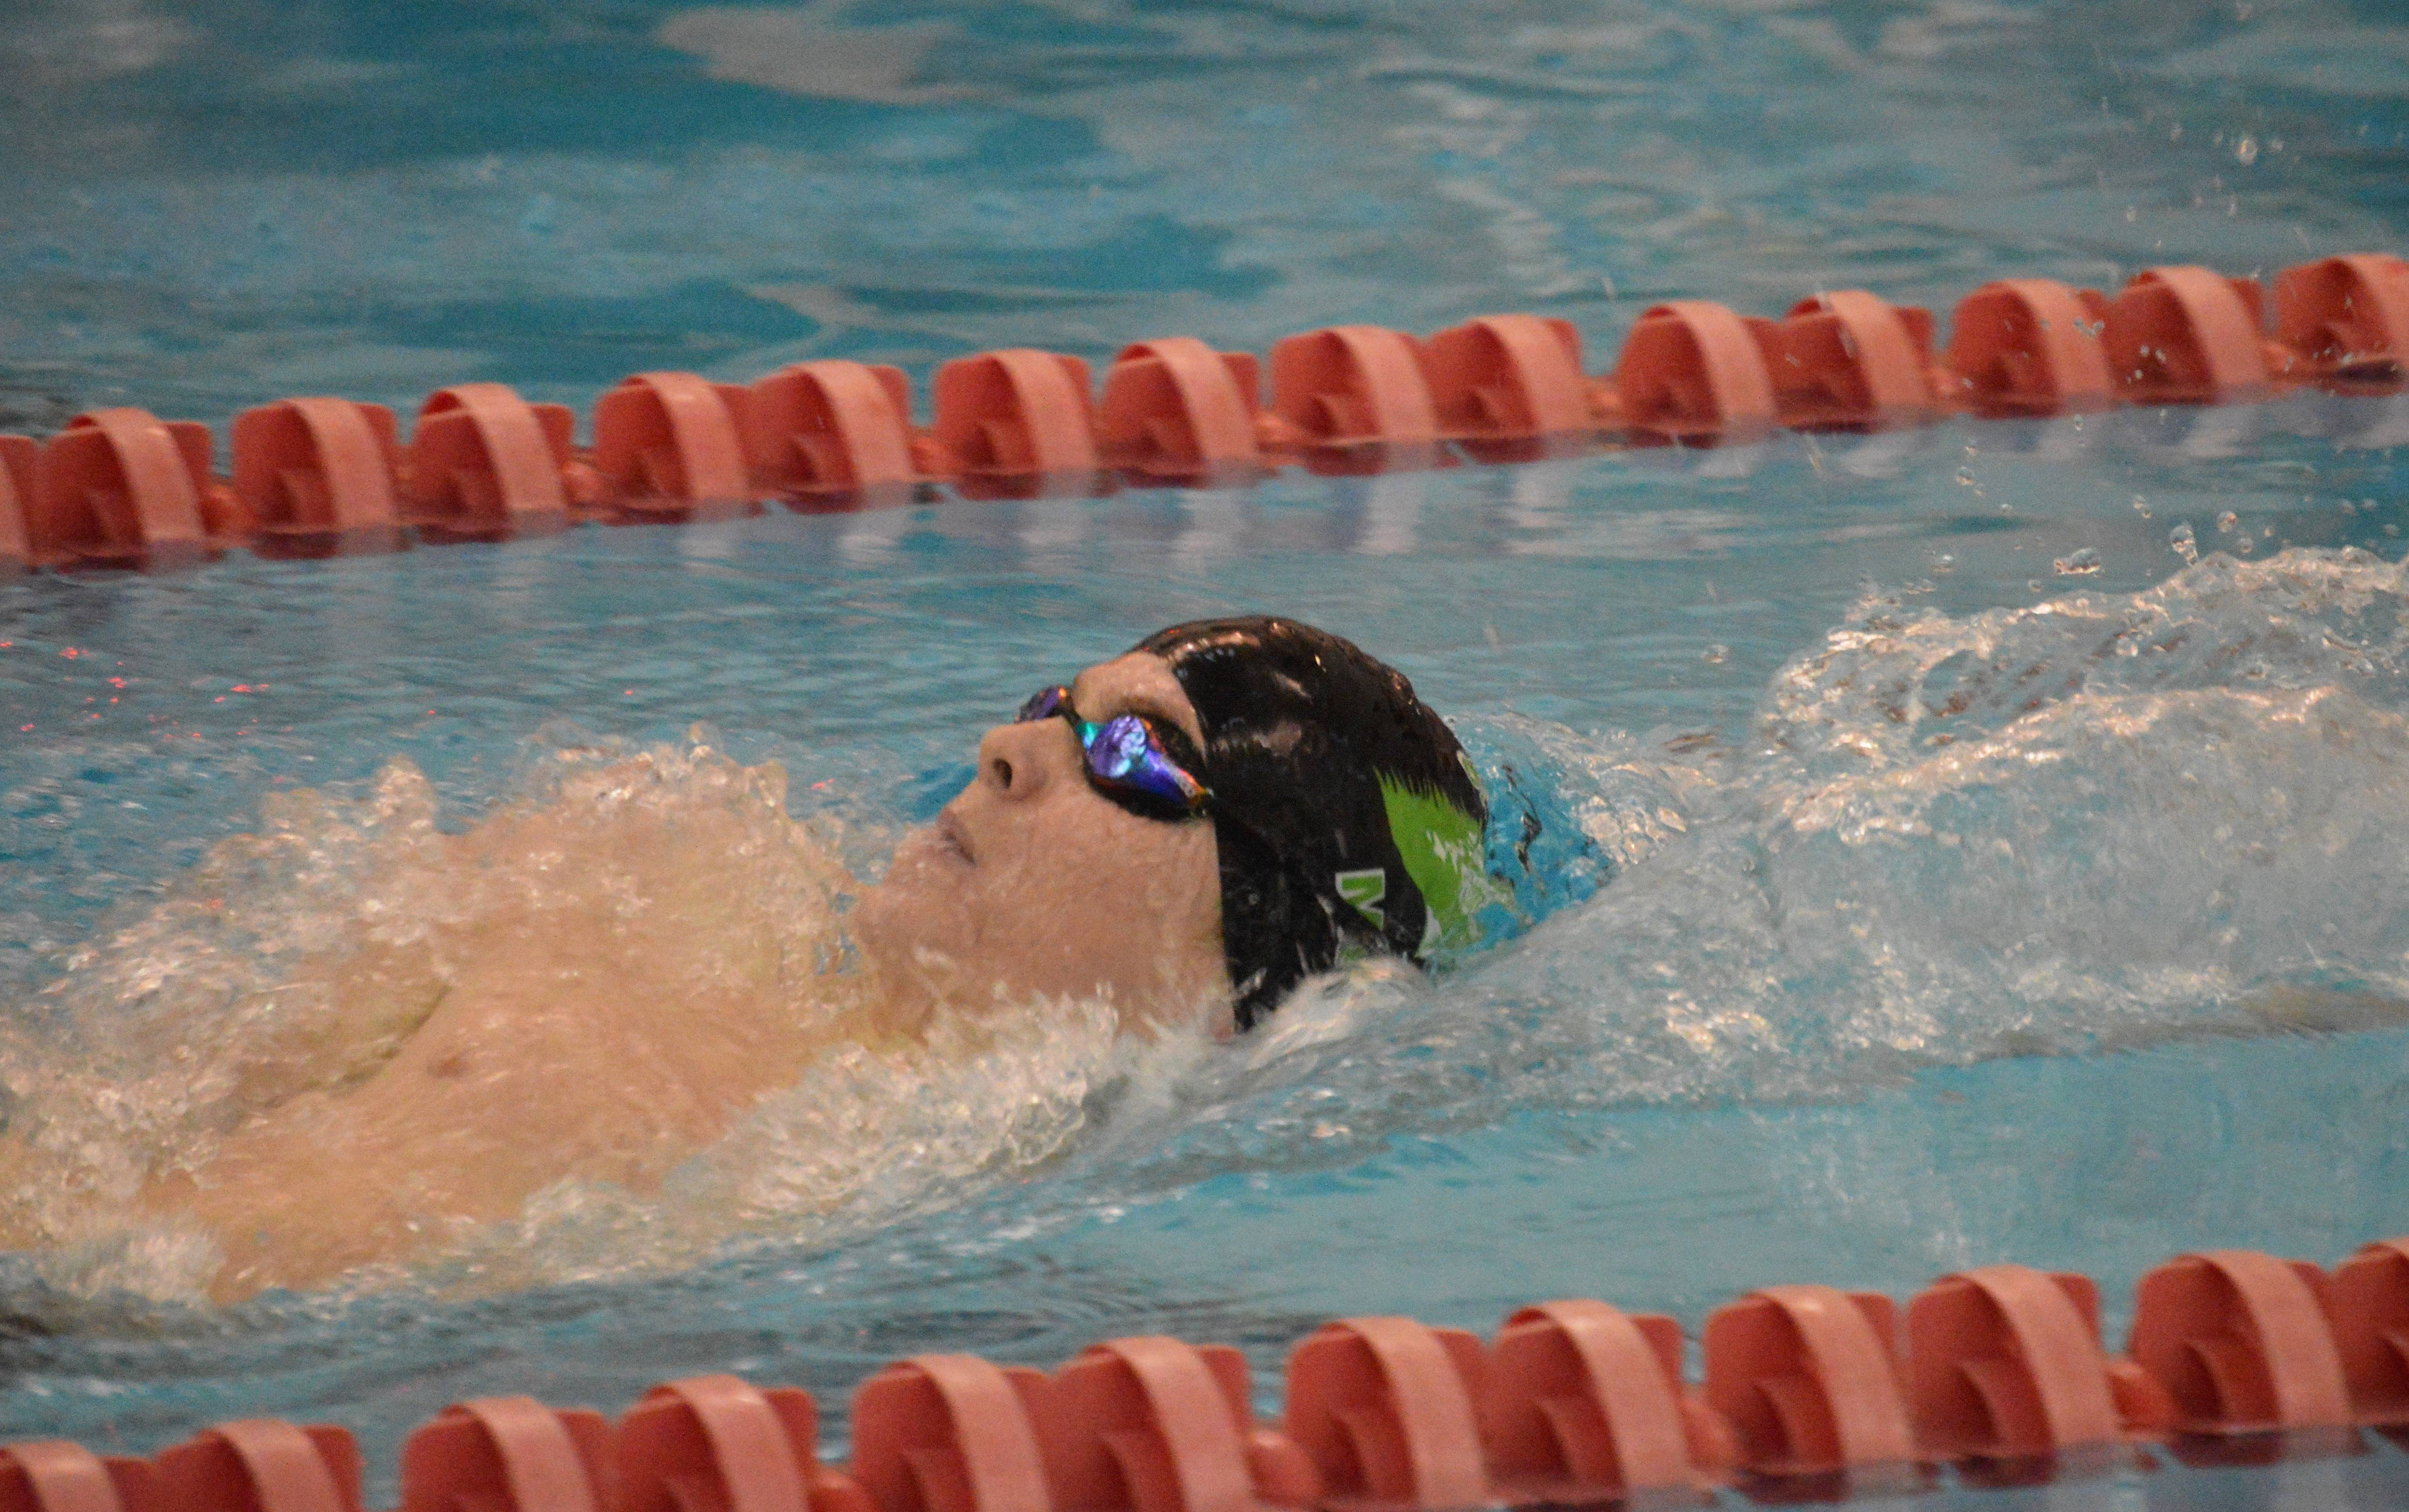 ee9b5a7cdc5bde4a69a0_1-18-17_Andrew_Thompson_of_St._Joe_s_finishes_second_in_the_200_IM.JPG